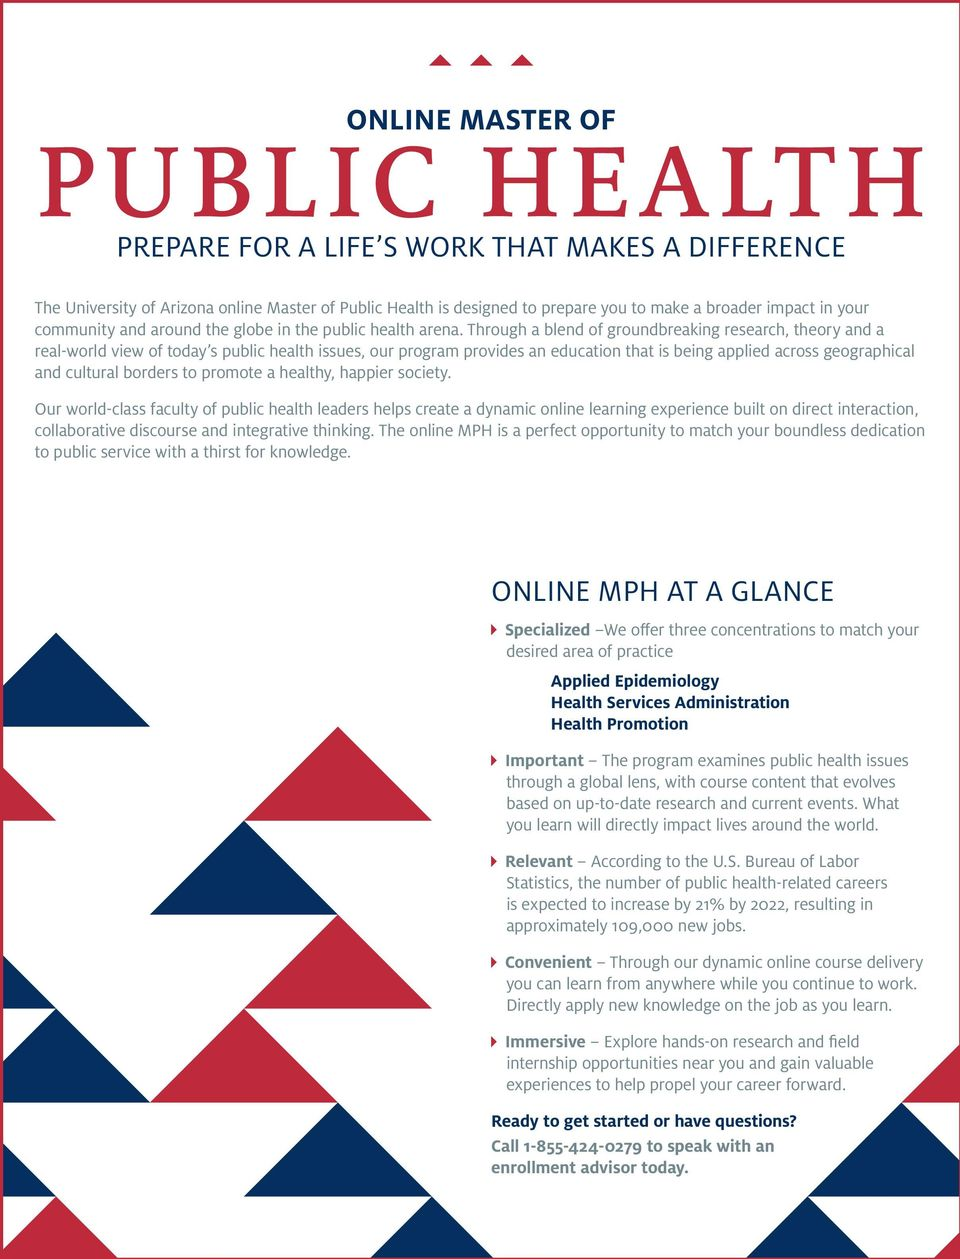 Through a blend of groundbreaking research, theory and a real-world view of today s public health issues, our program provides an education that is being applied across geographical and cultural